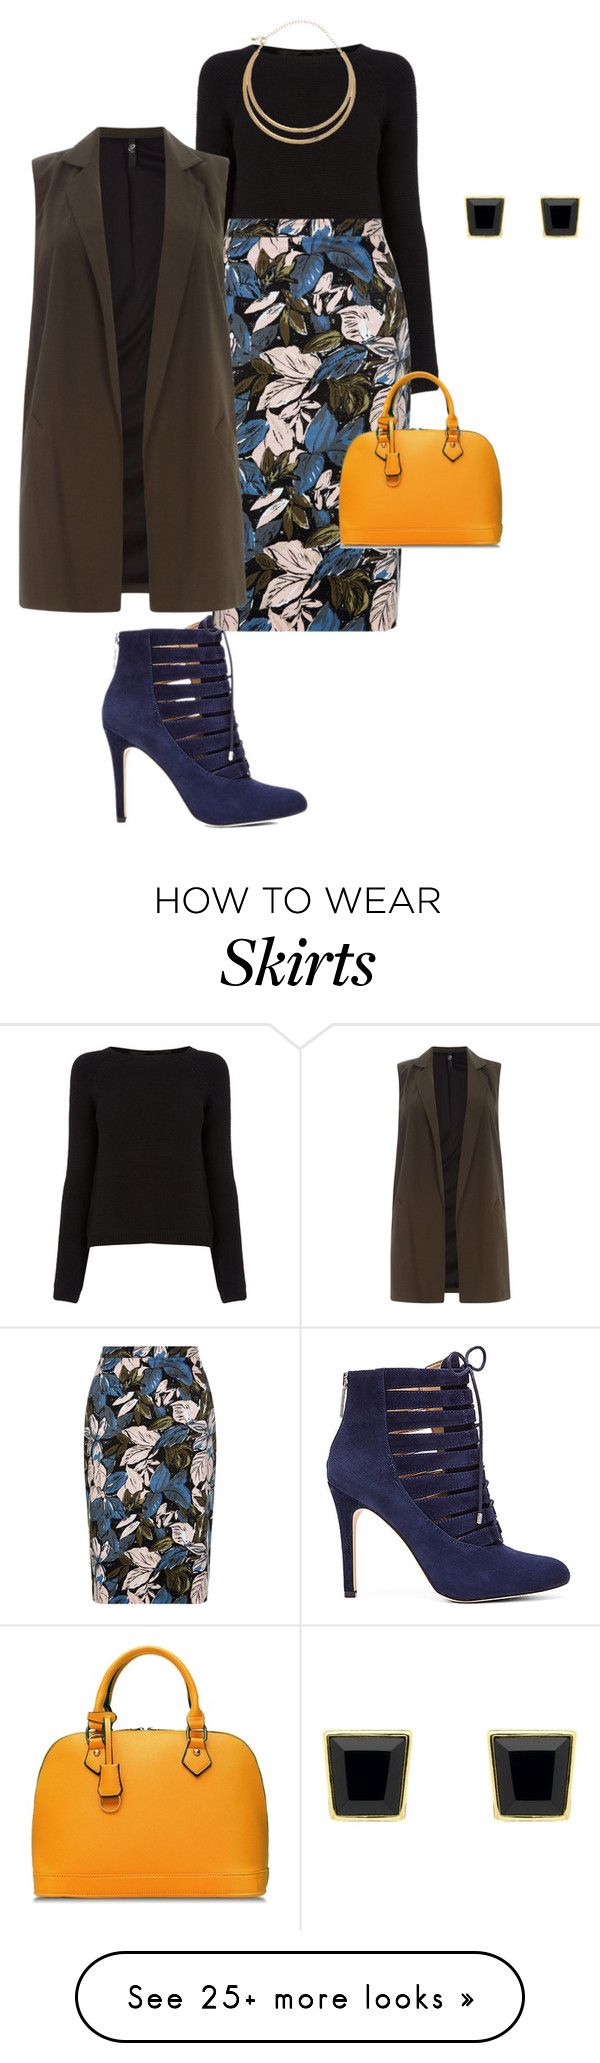 """""""plus size skirt remixed for work"""" by kristie-payne on Polyvore featuring BCBGeneration, Oasis, Evans, M&Co and Monet"""